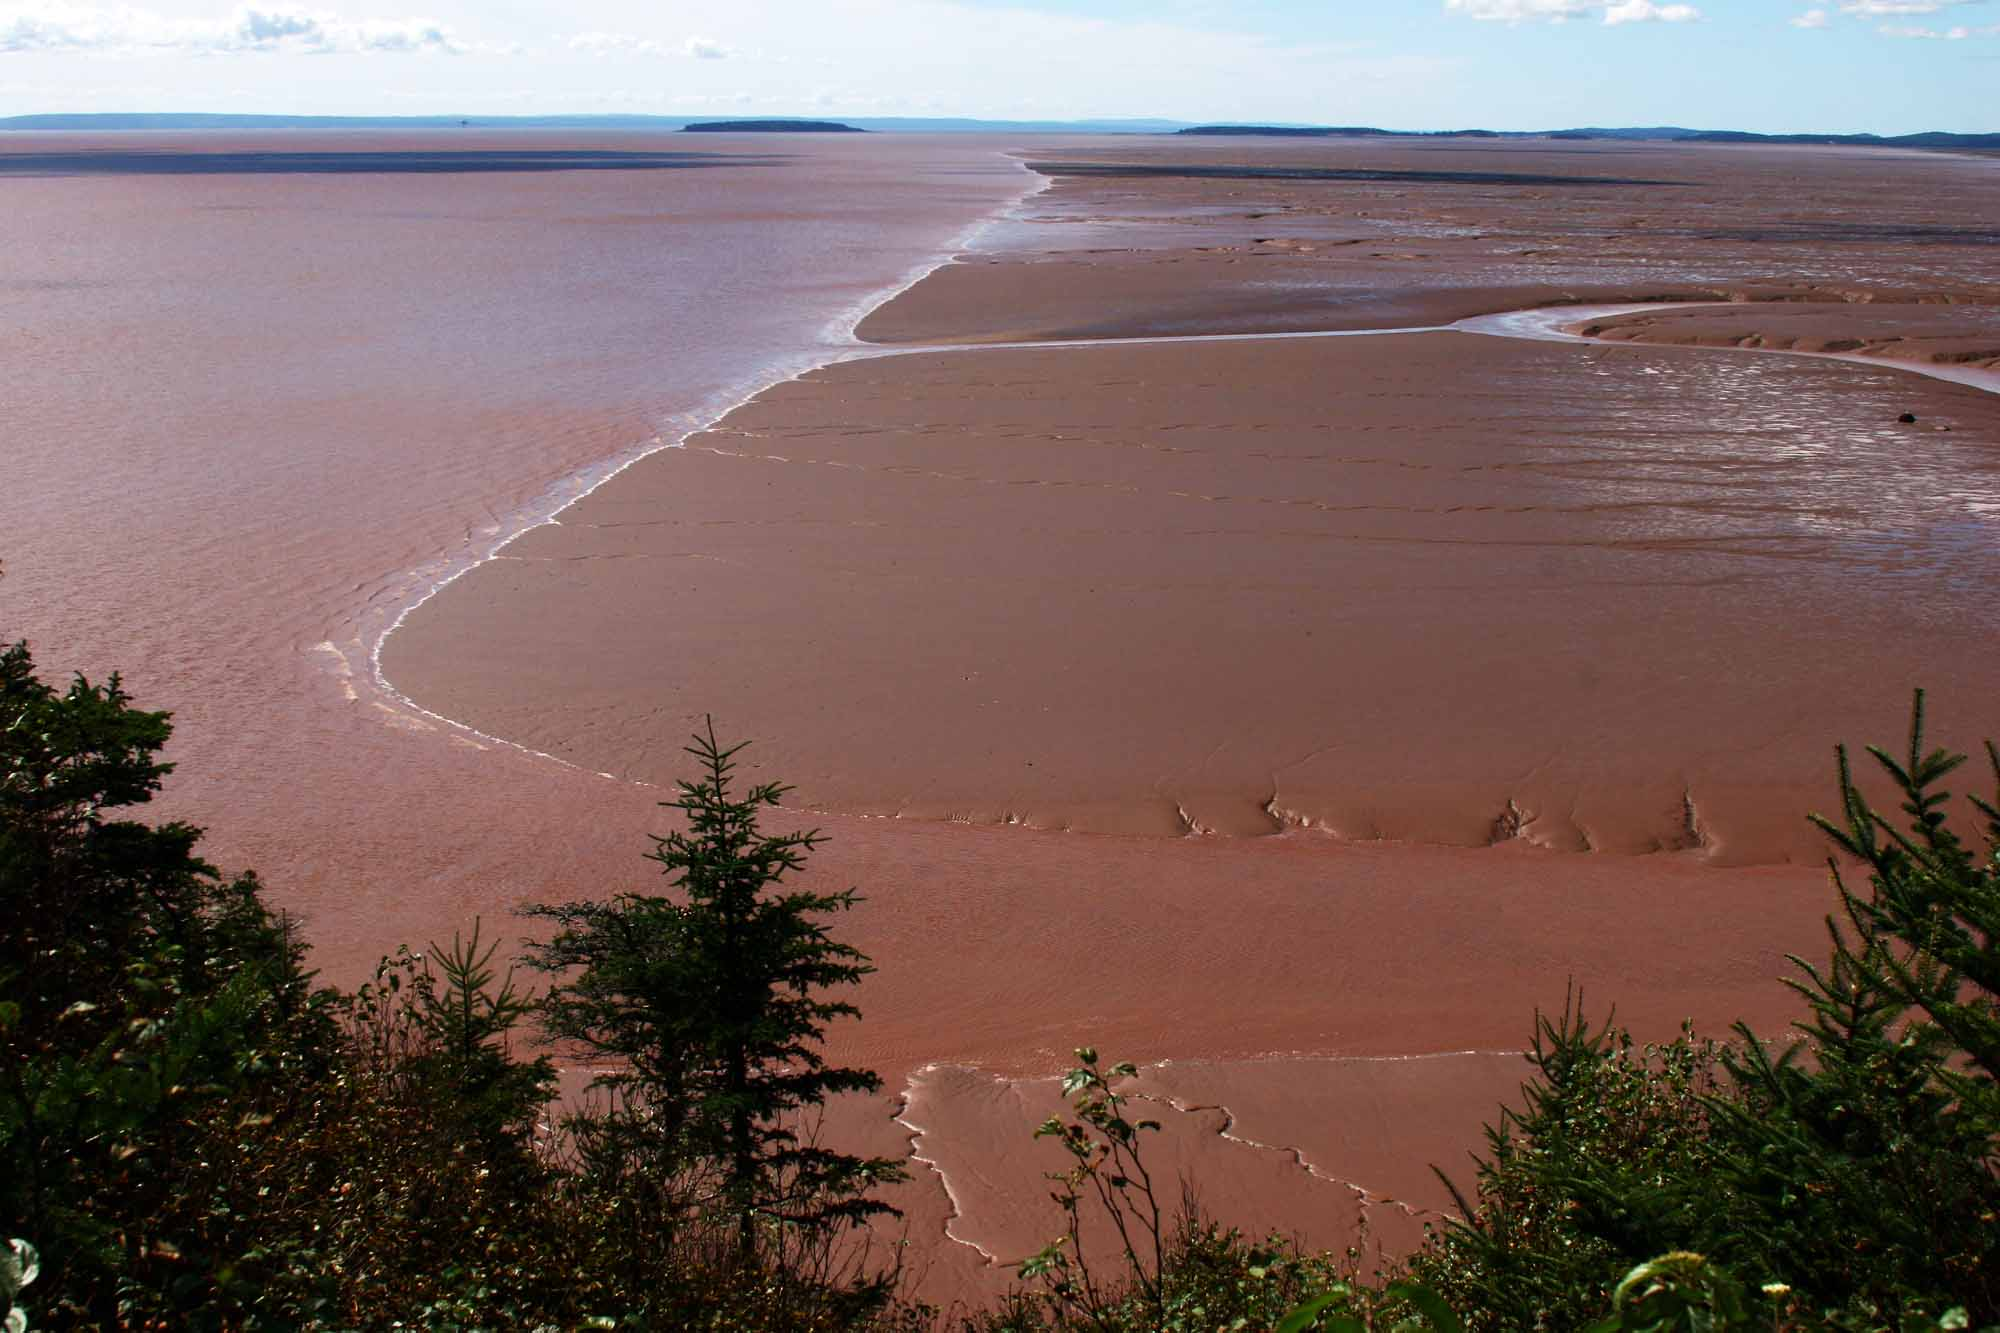 Bay of Fundy and Gulf of Maine